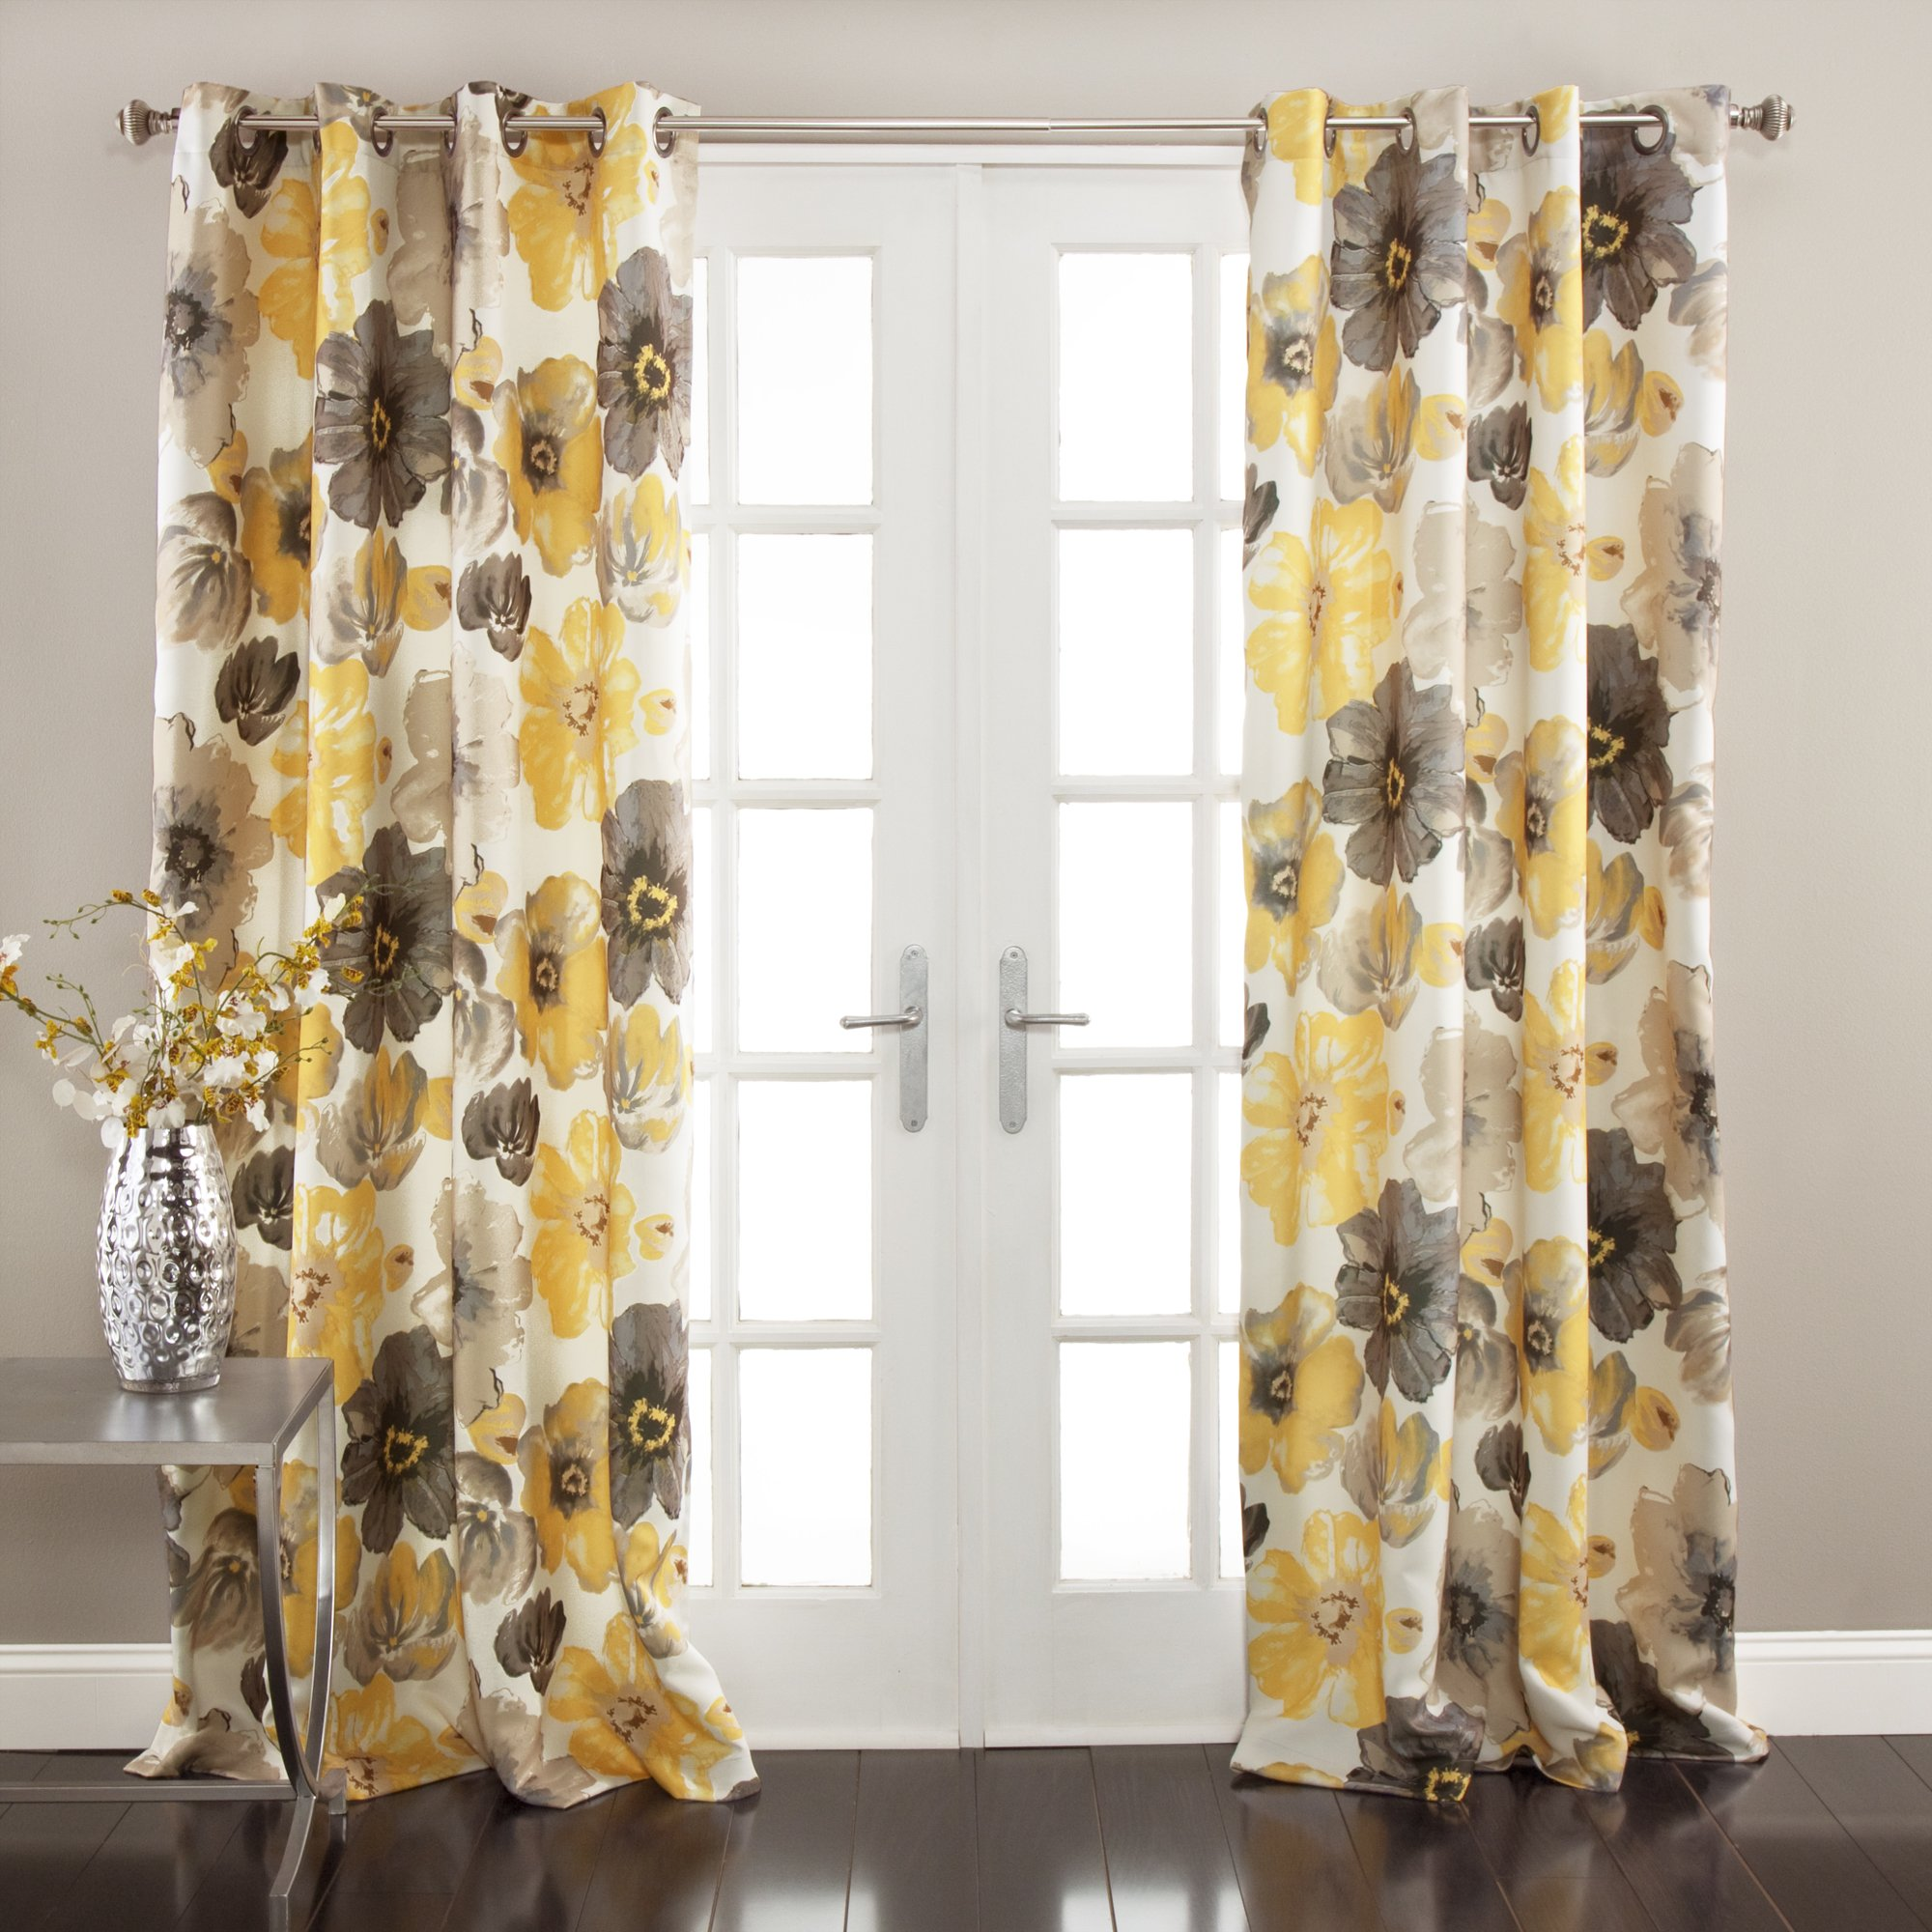 Lush Decor Leah Floral Darkening Yellow and Gray Window Curtain Panel Set for Living, Dining Room, Bedroom (Pair), 84'' L by Lush Decor